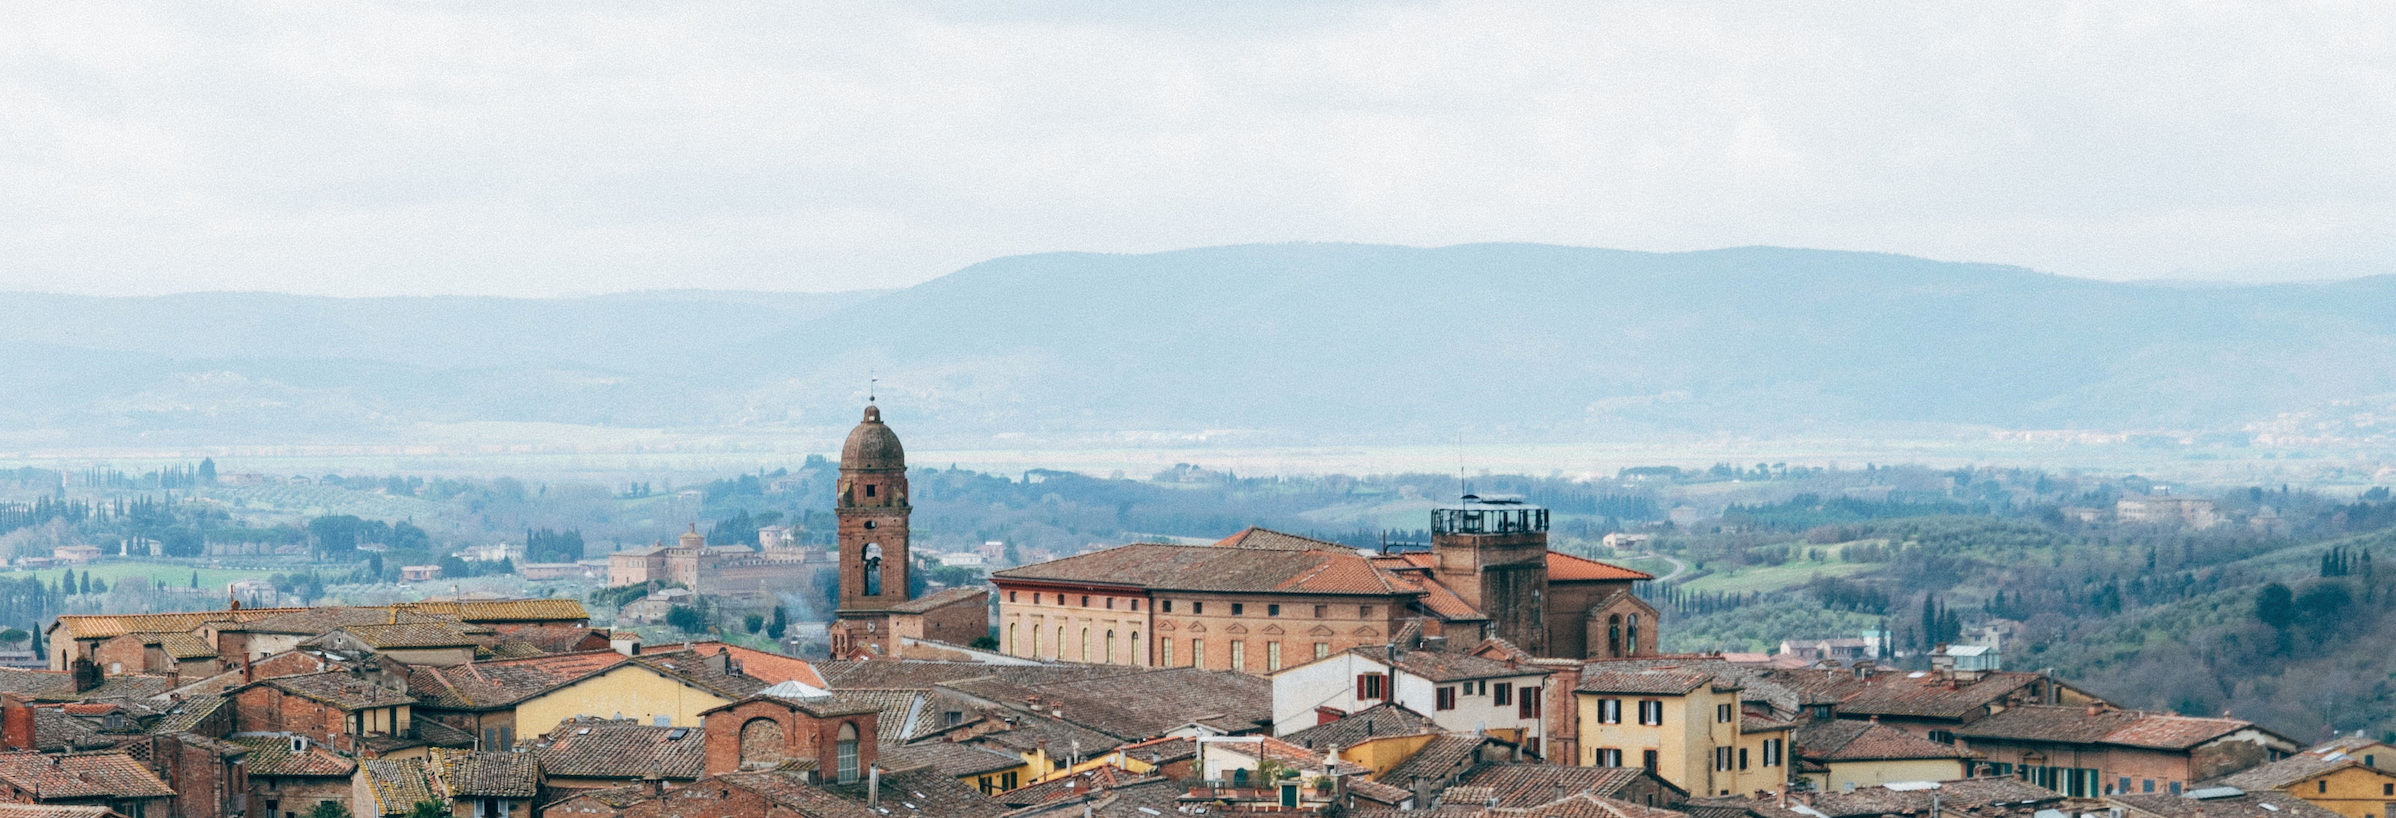 Siena photo by   Kai Pilger   from   Pexels